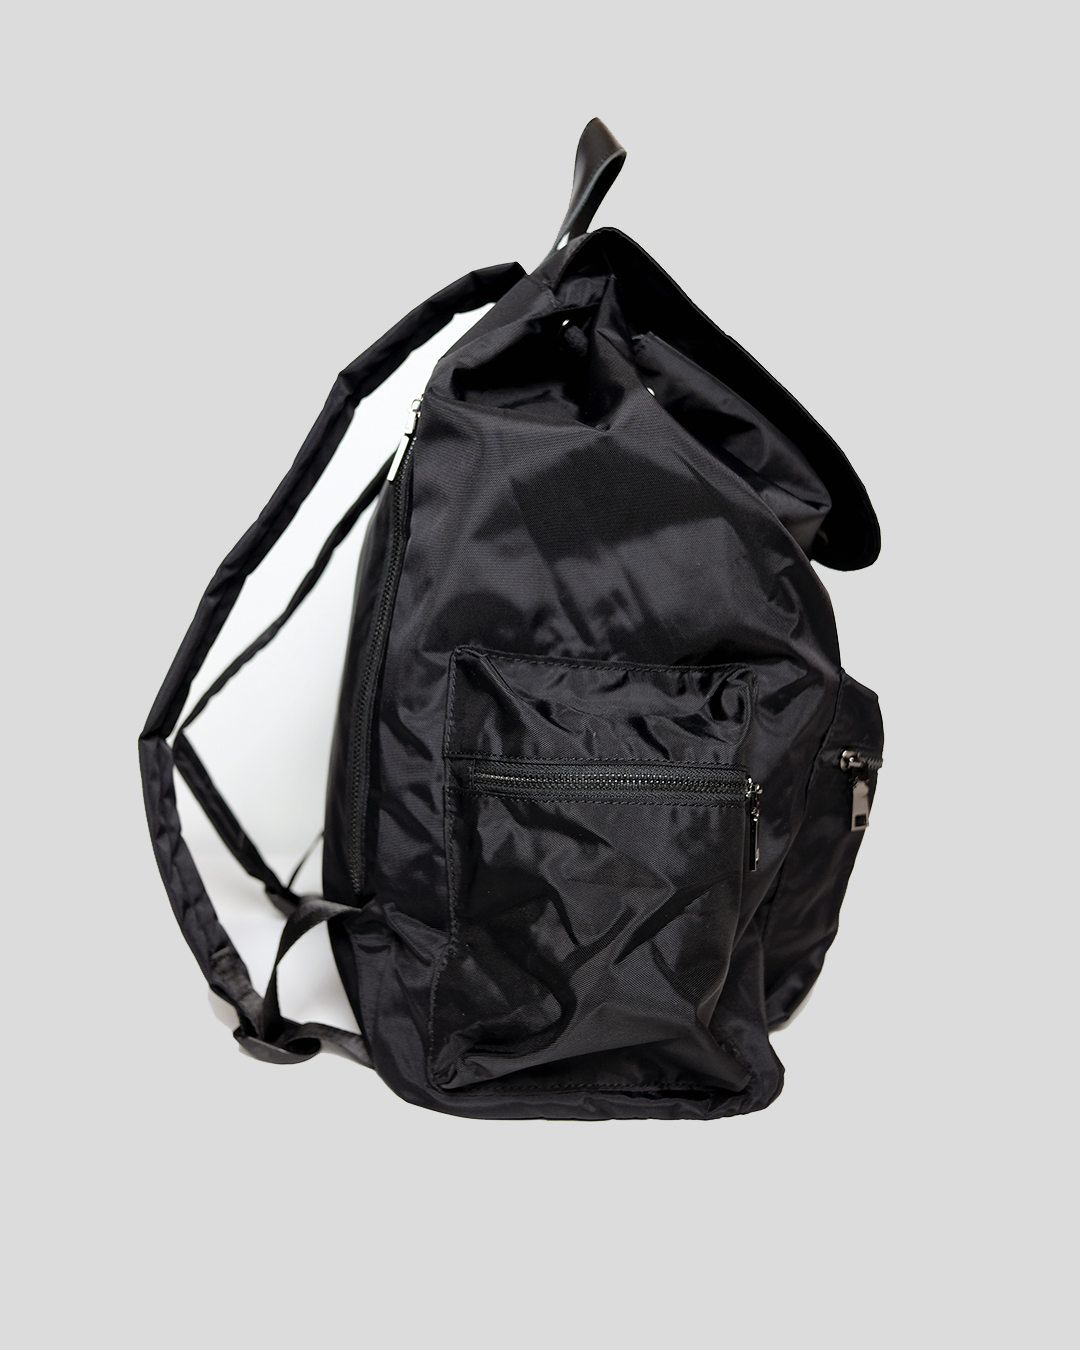 photo-2-BLACK-NYLON-RIPSTOP-BACKPACK-URBANE-MUSE-CHRIS-SMITH